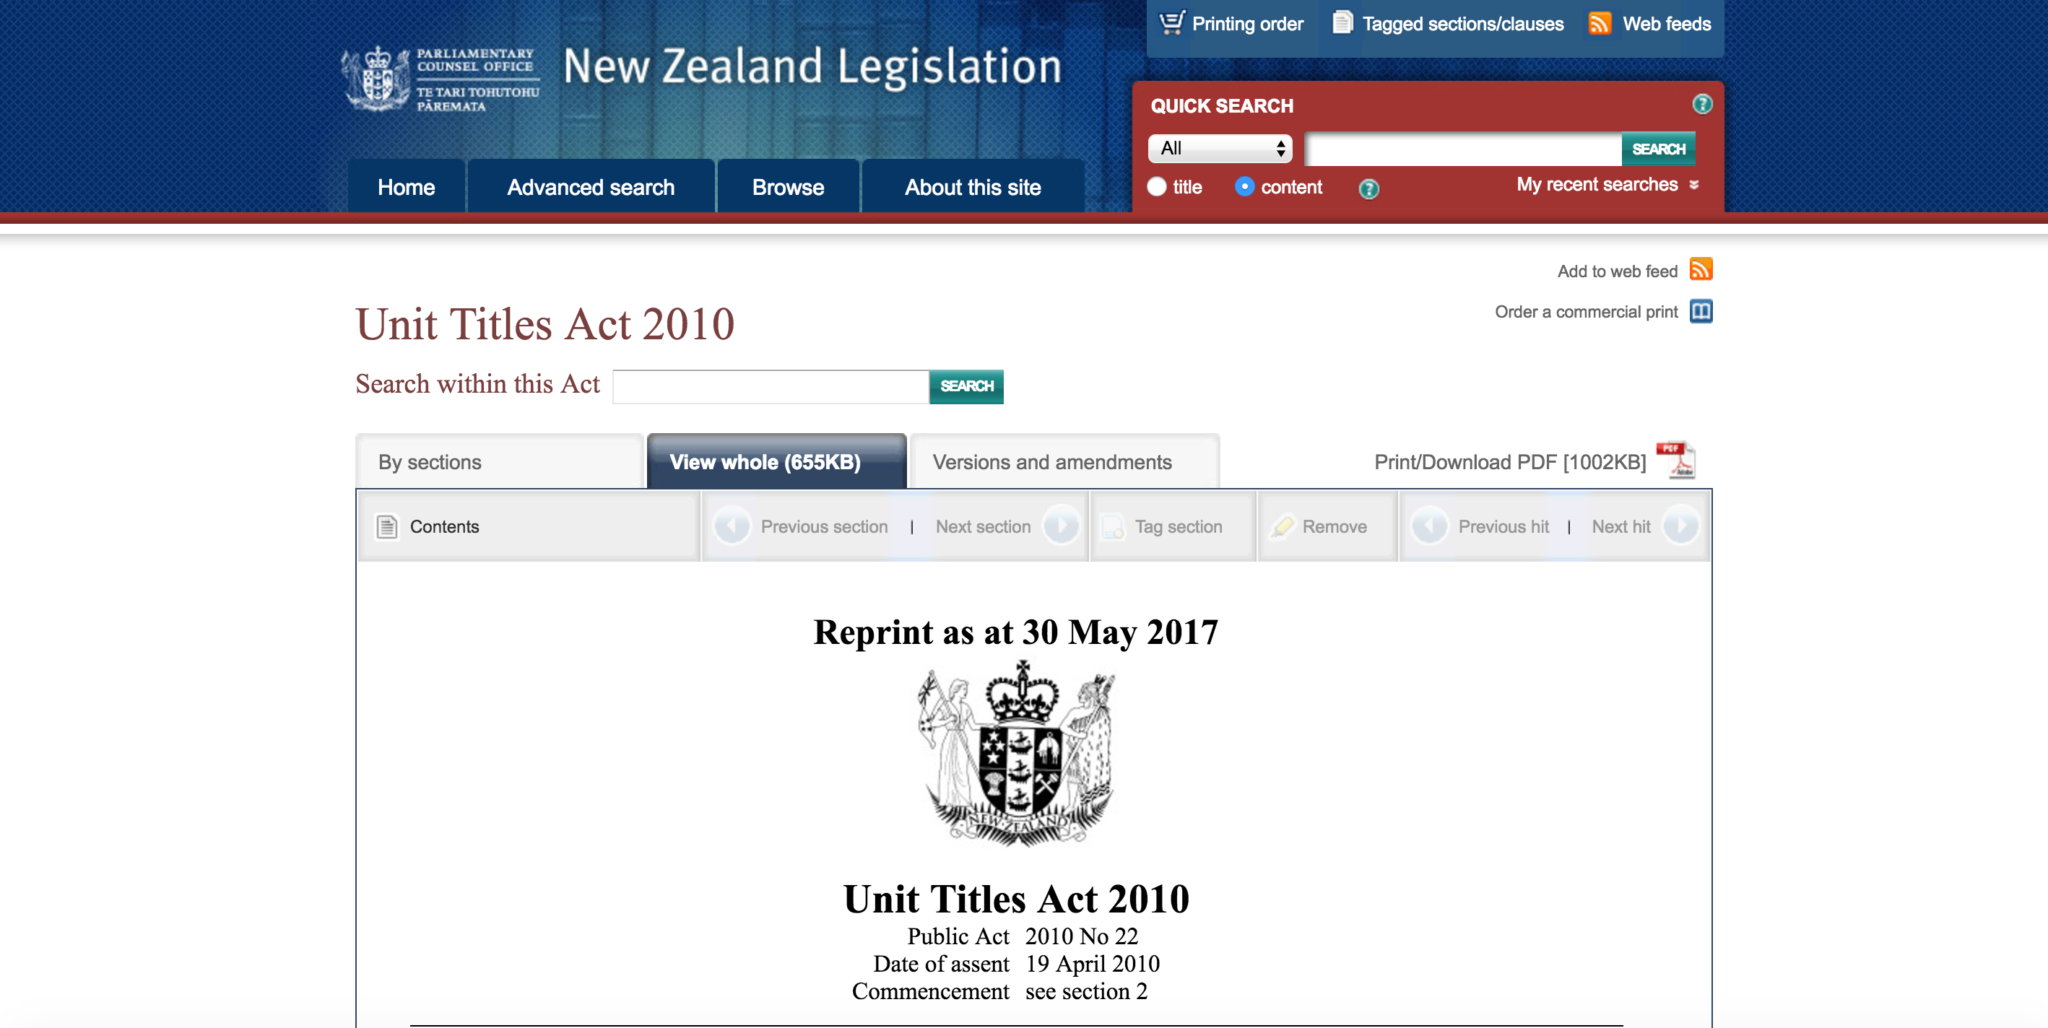 Unit Titles Act 2010